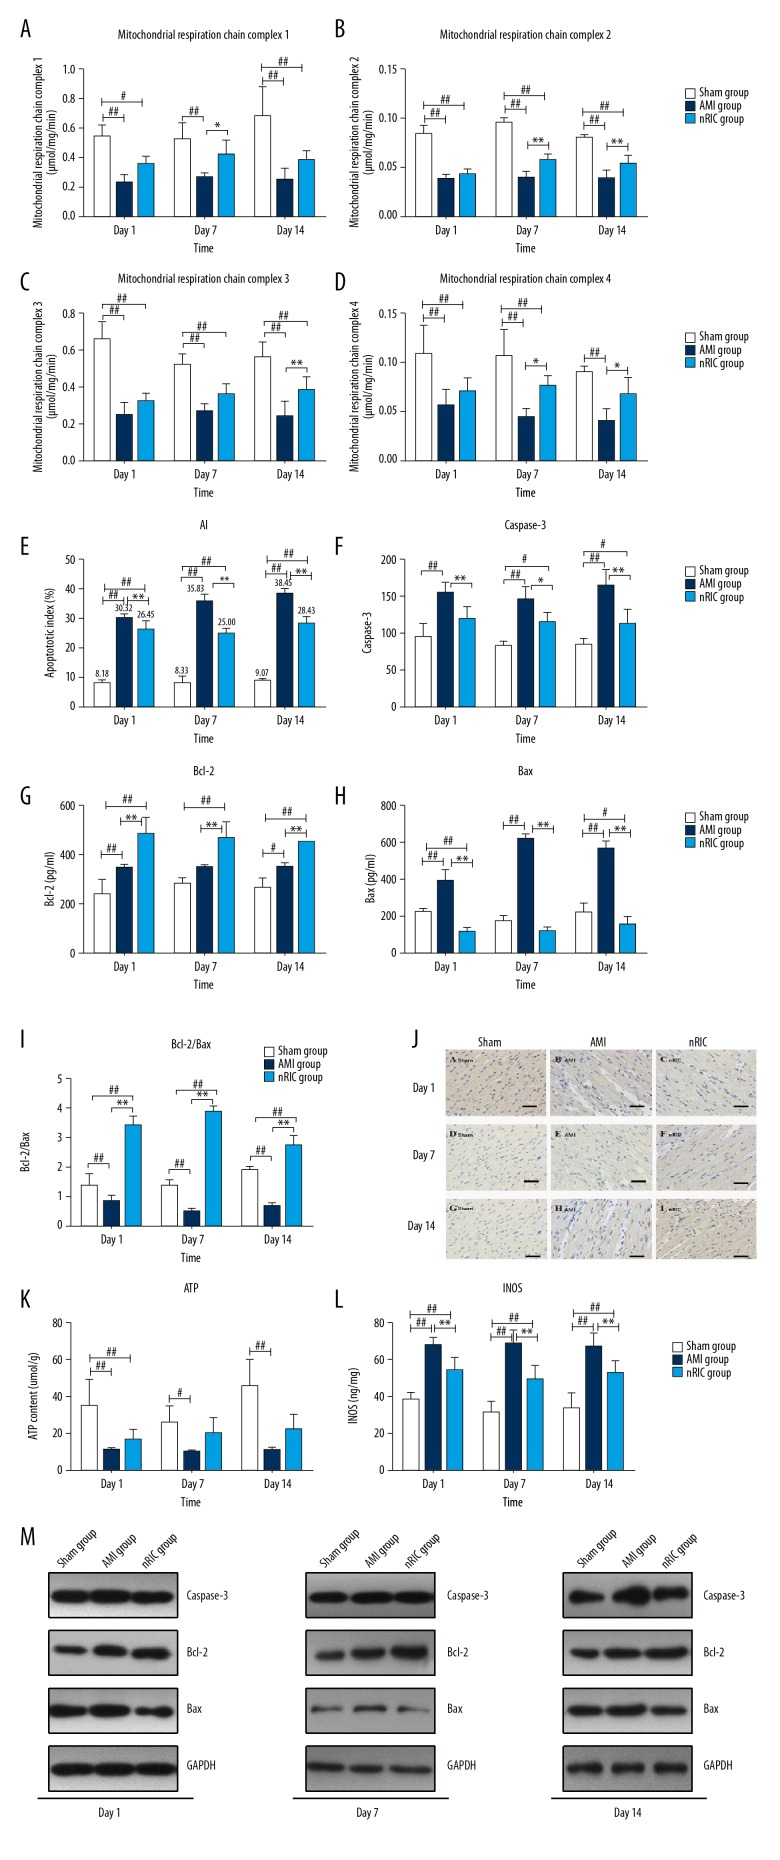 The effects of remote ischemic conditioning (RIC) on cardiac hemodynamic function and mitochondrial respiratory function in the rat model of acute myocardial infarction (AMI). ( A–D ) The myocardial concentrations of mitochondrial respiratory chain complexes 1, 2, 3, and 4. ( E ) The apoptosis index of the ischemia area for the three groups, the sham group, the AMI group, and the RIC group. ( F ) The serum concentrations of caspase-3 in each of the three rat groups. ( G–I ) The expression of Bcl-2 and Bax protein, and the ratio of Bcl-2/Bax in each group. ( J ) Myocardial cell apoptosis determined by TUNEL staining in rats after AMI. Scale bar=200 μm. (K–L) The levels of ATP and inducible nitric oxide synthase (iNOS) in each group. ( M ) Western blot assay for the protein levels of caspase-3, Bcl-2, and Bax in each group. * P